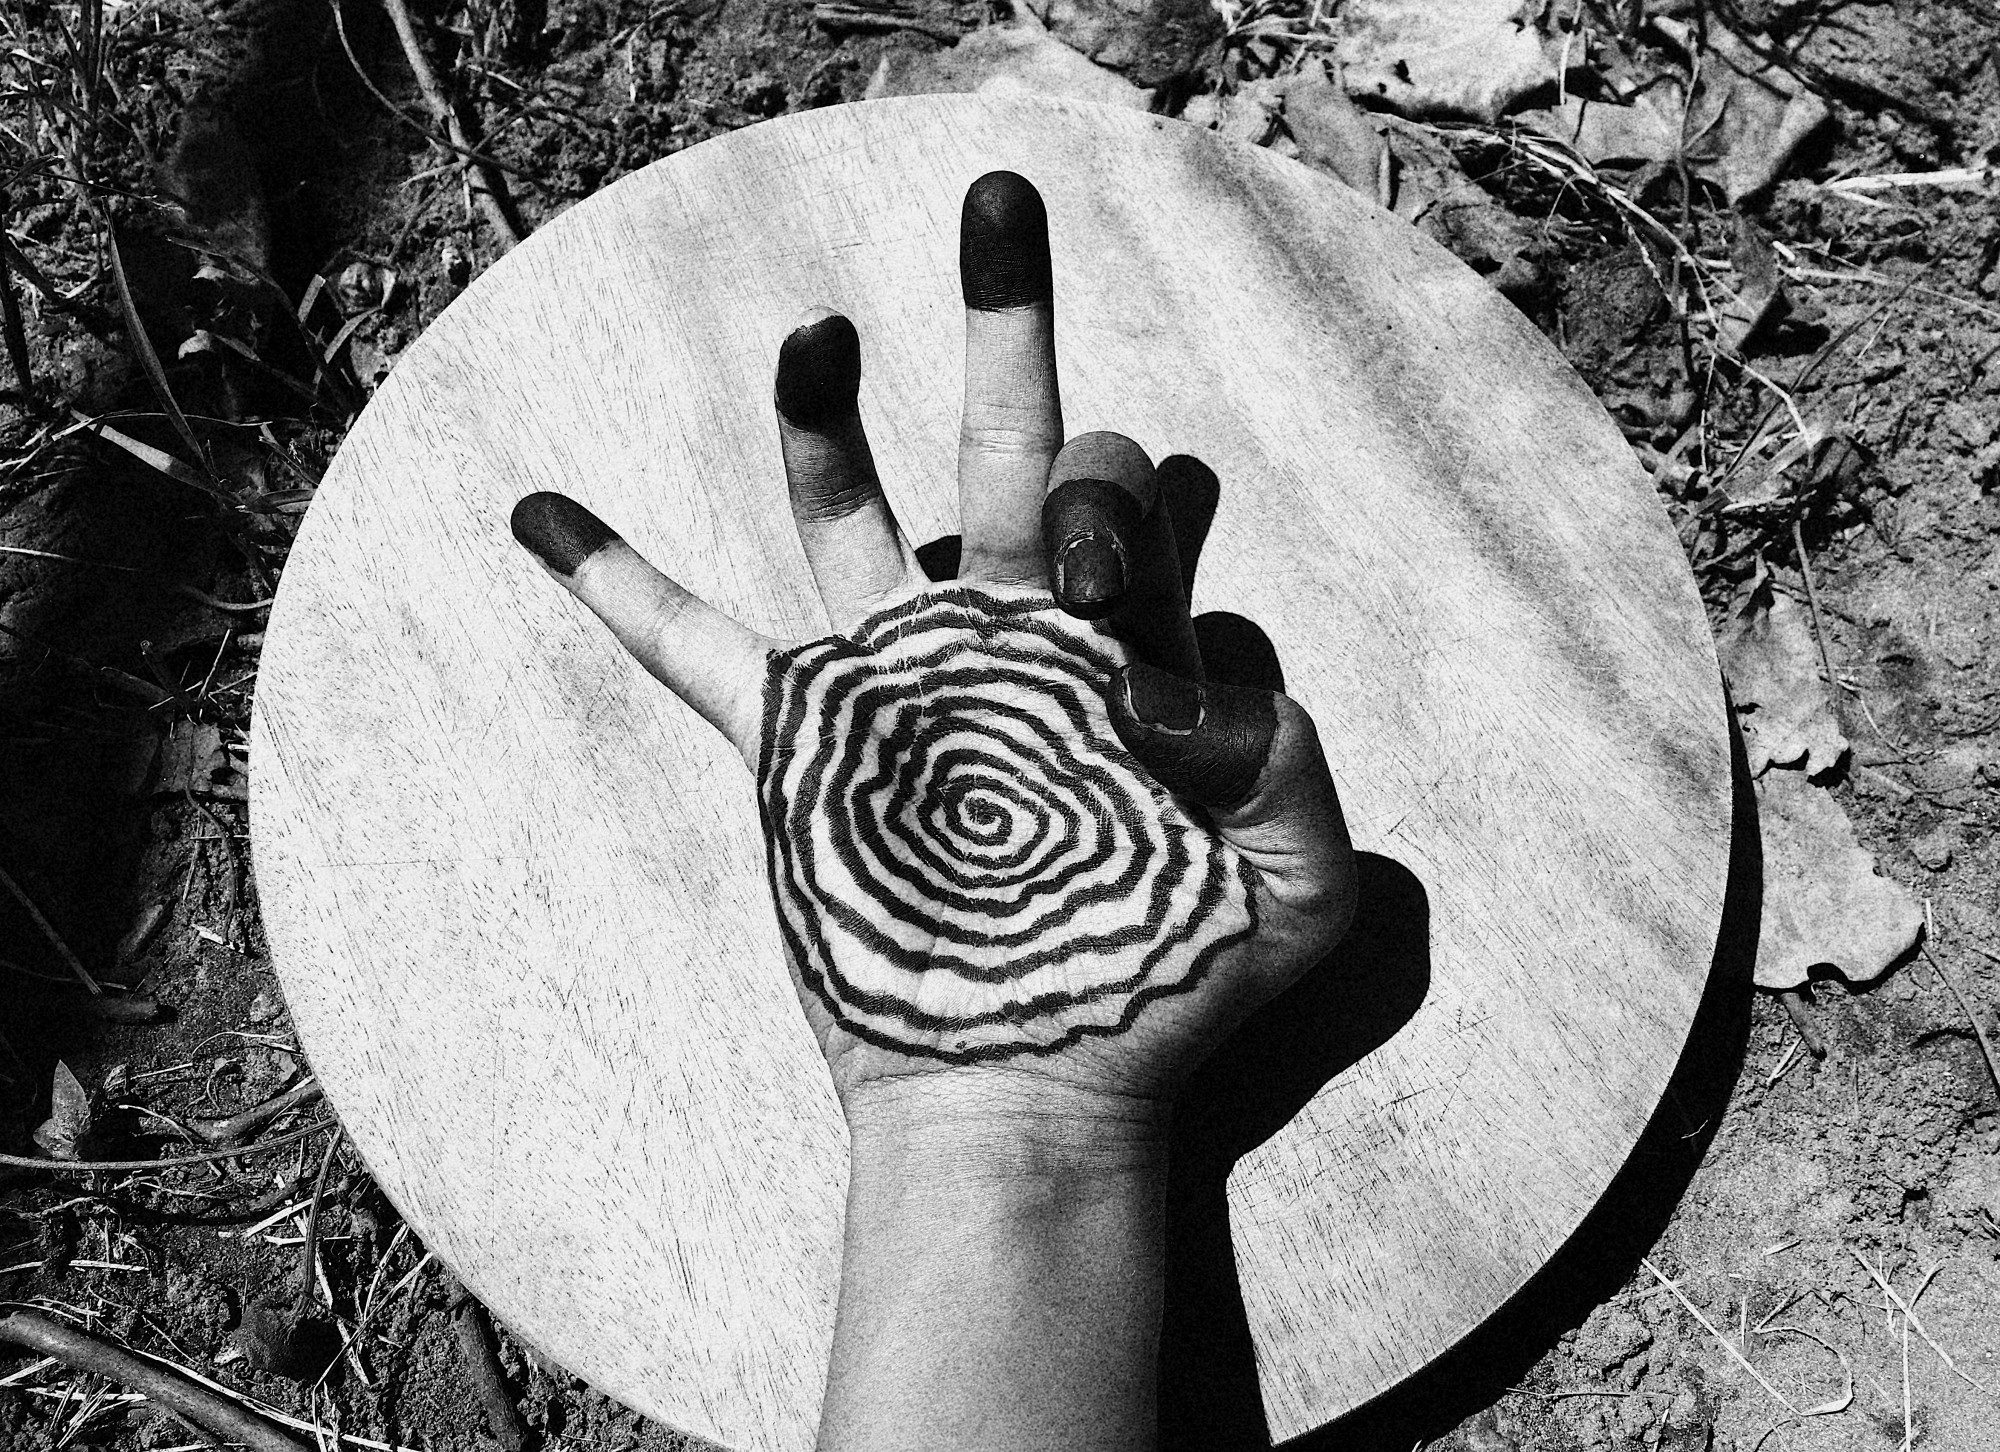 'Liminal Mudra: The Un-appropriated Hand' (2019), Nithya Iyer.